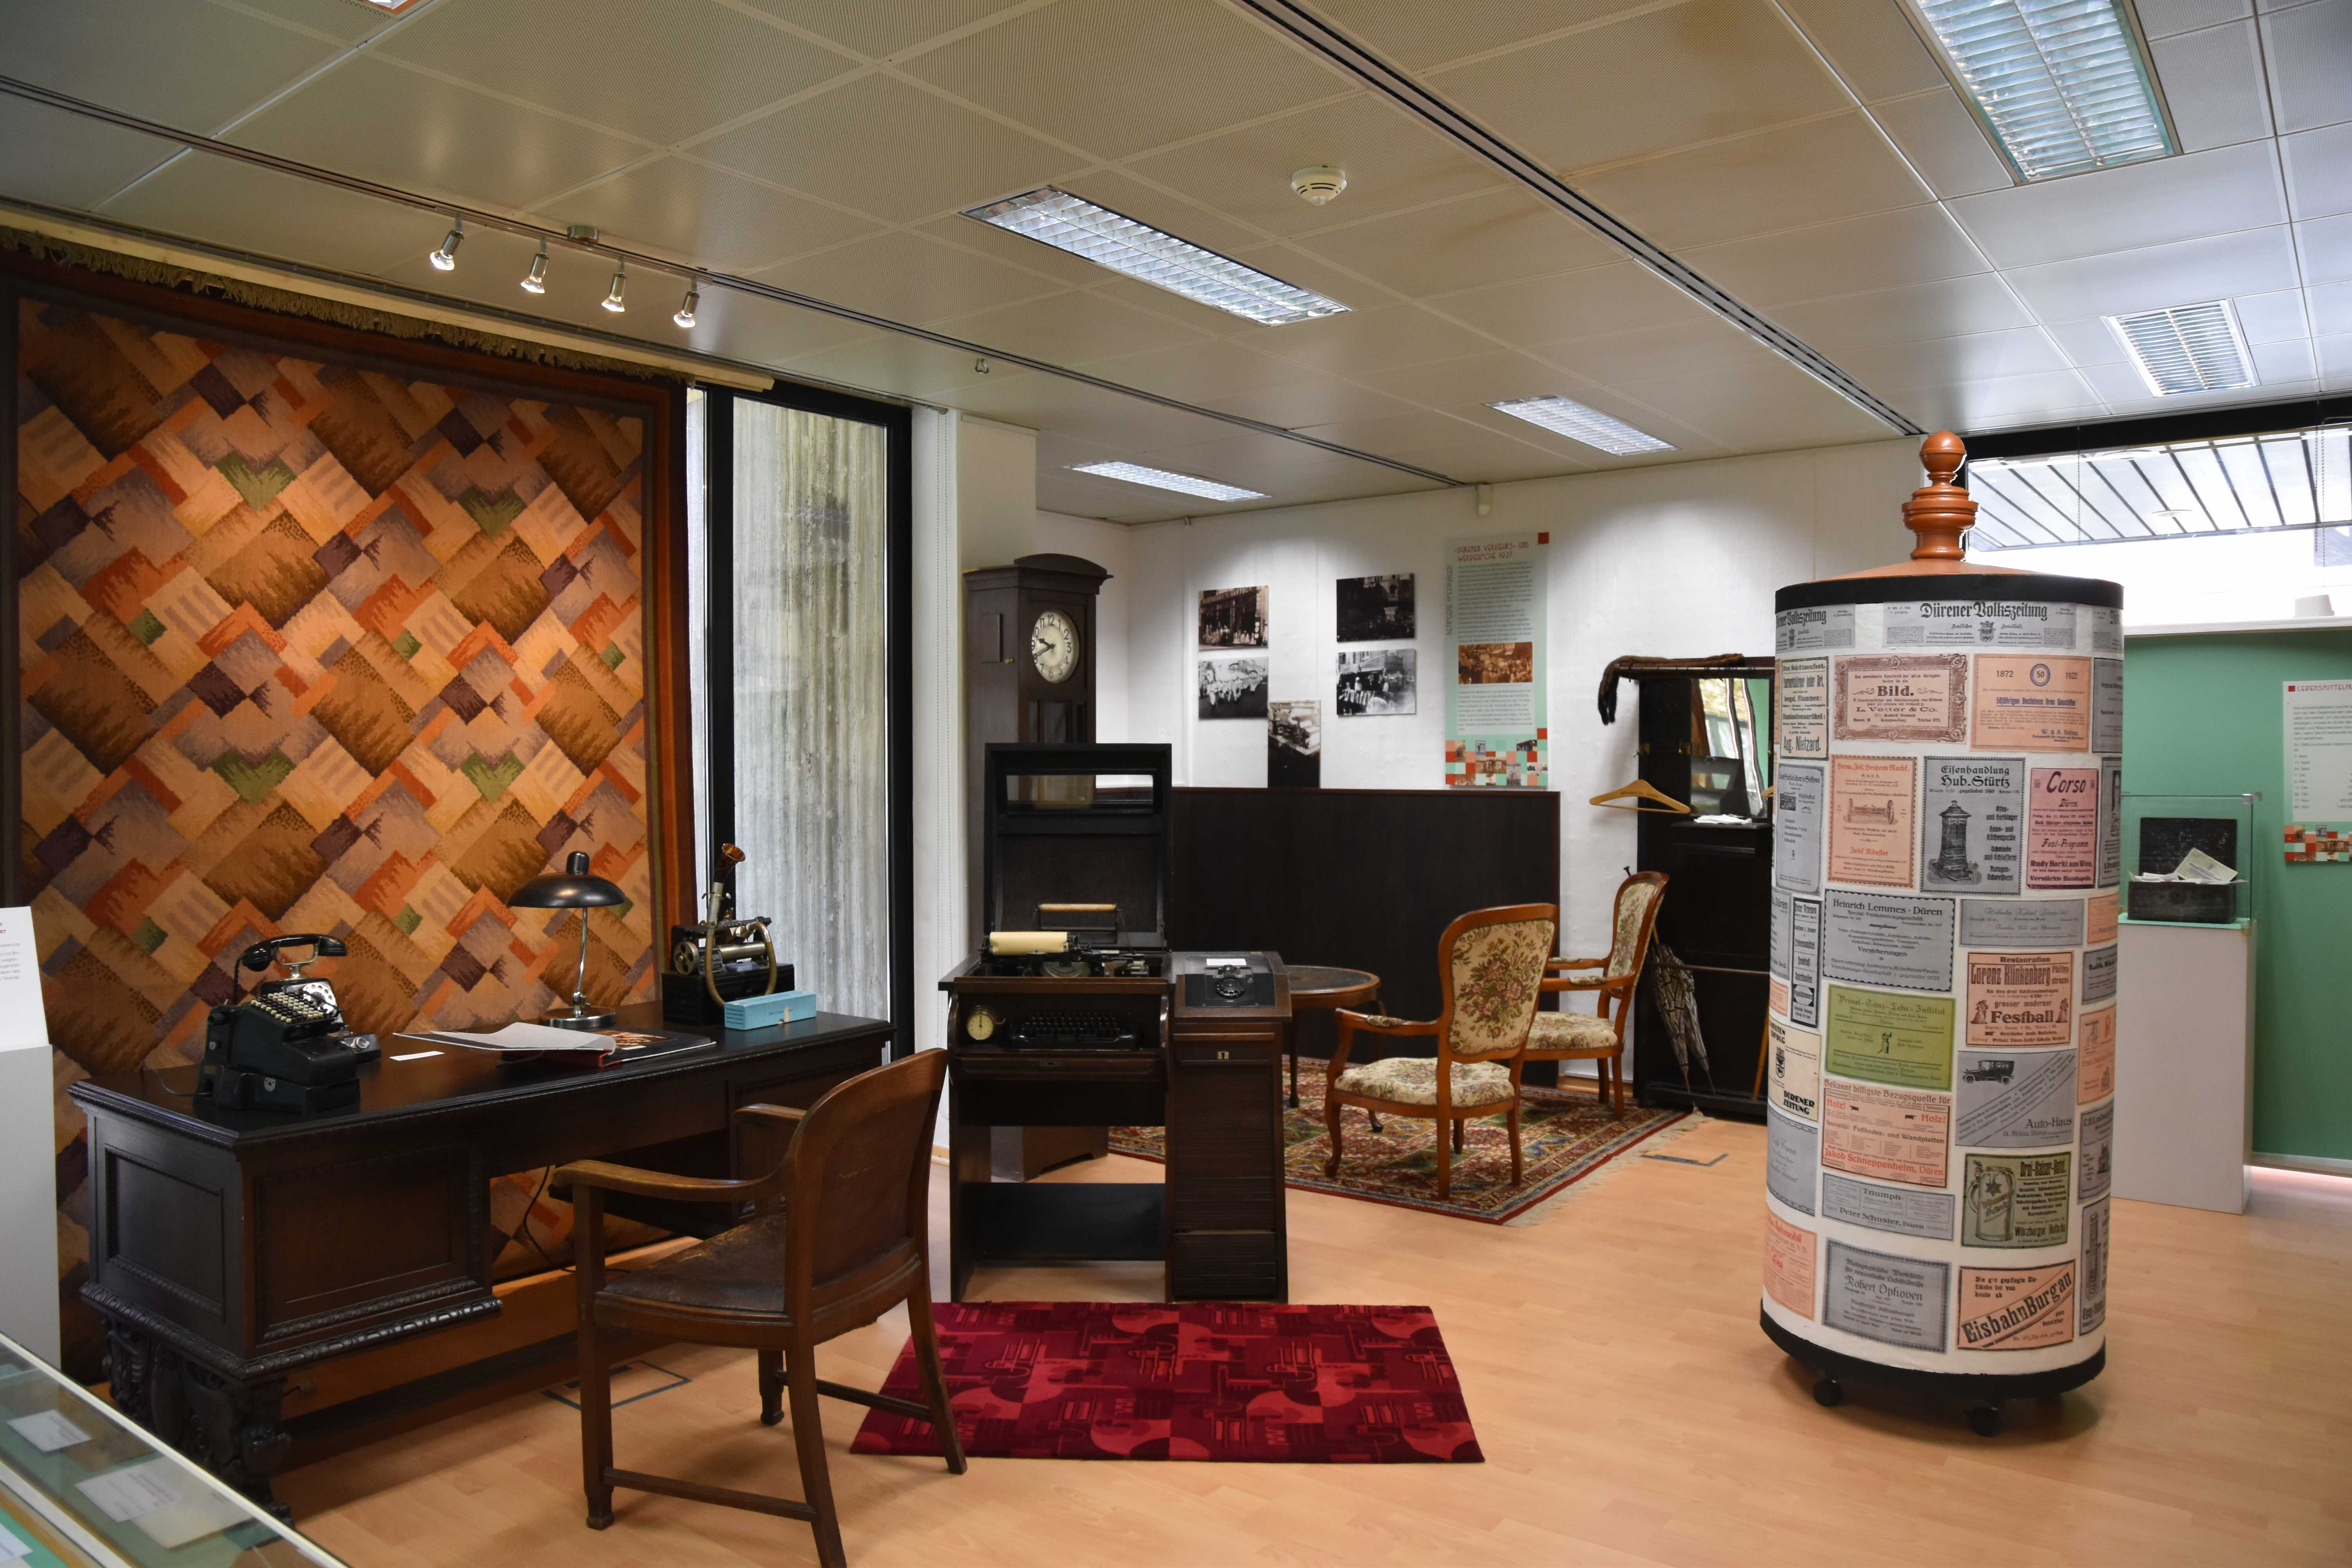 ausstellungen d rener stadtmuseum. Black Bedroom Furniture Sets. Home Design Ideas